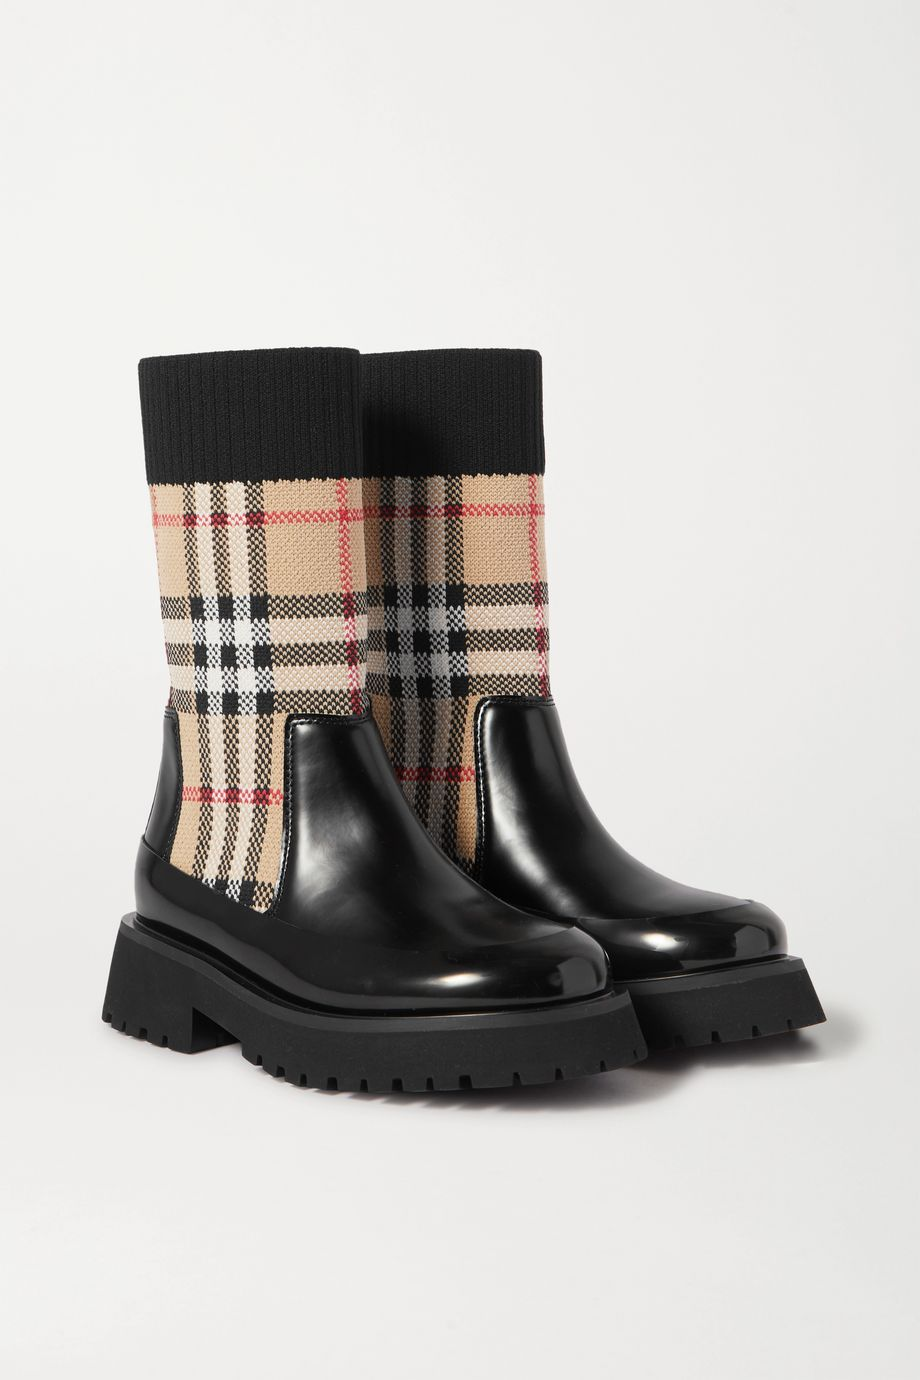 Burberry Kids Ages 4 - 11 checked stretch-knit and glossed-leather boots